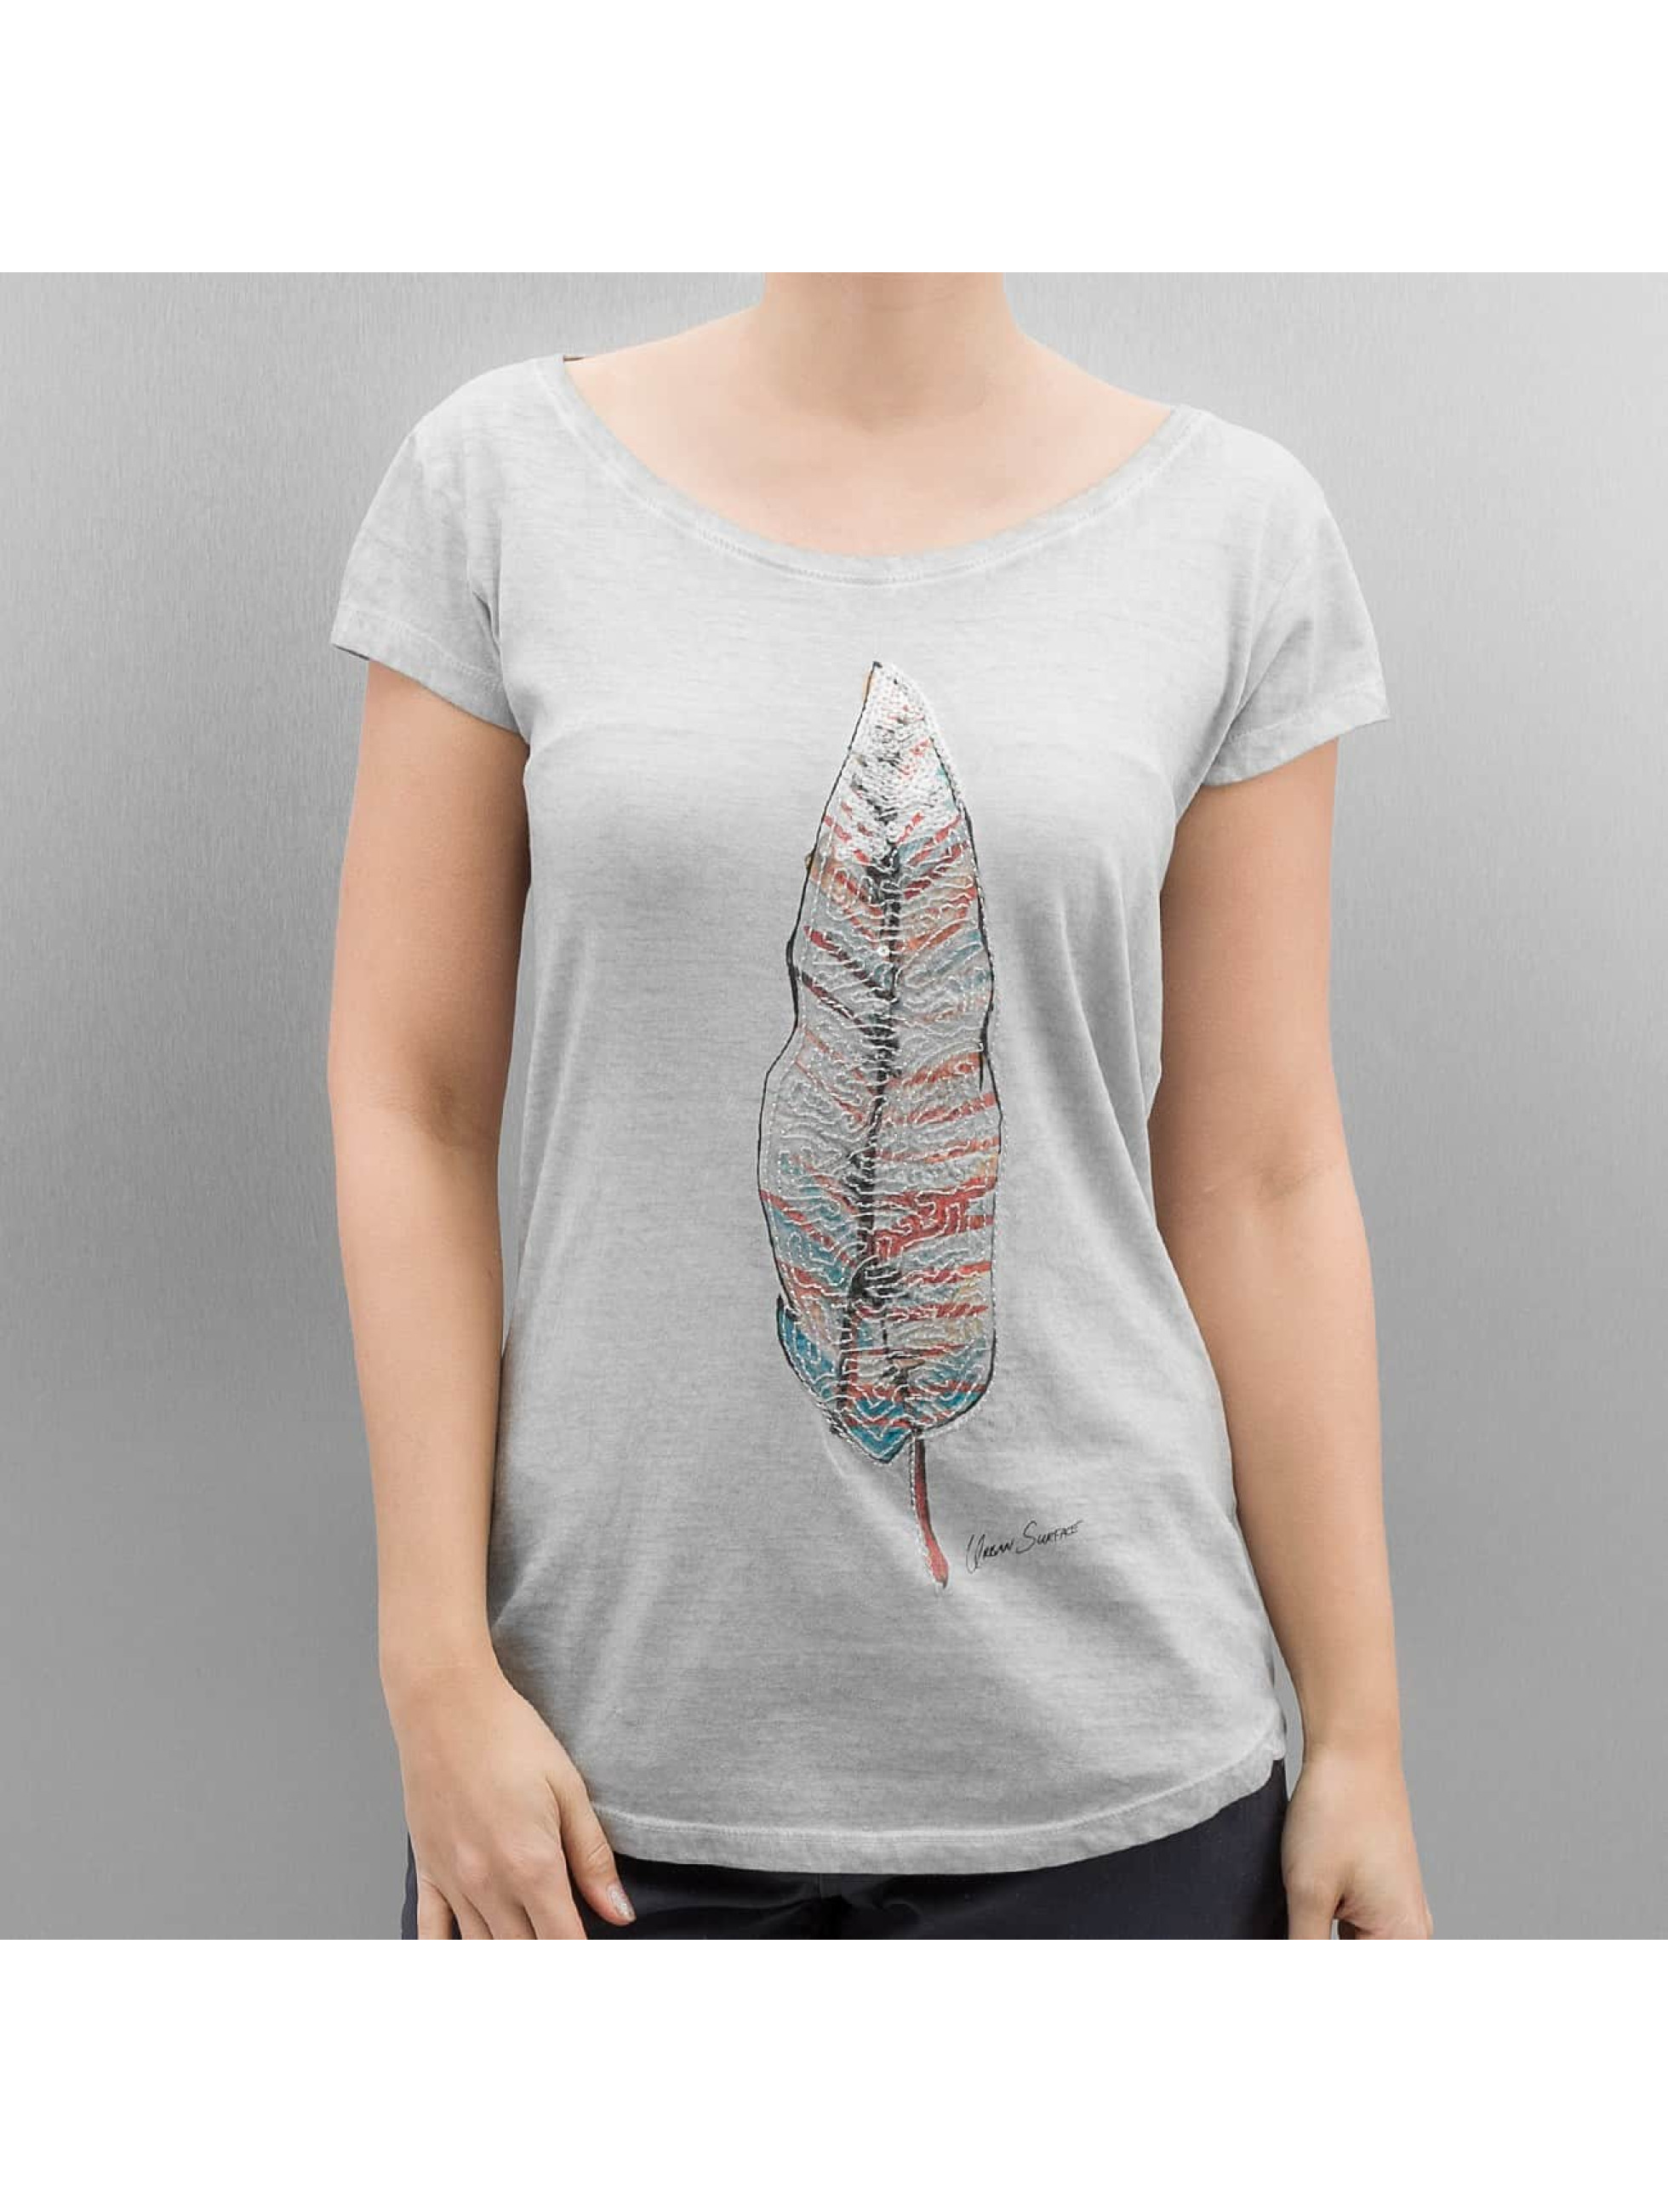 Authentic Style Frauen T-Shirt Feather in grau Sale Angebote Proschim